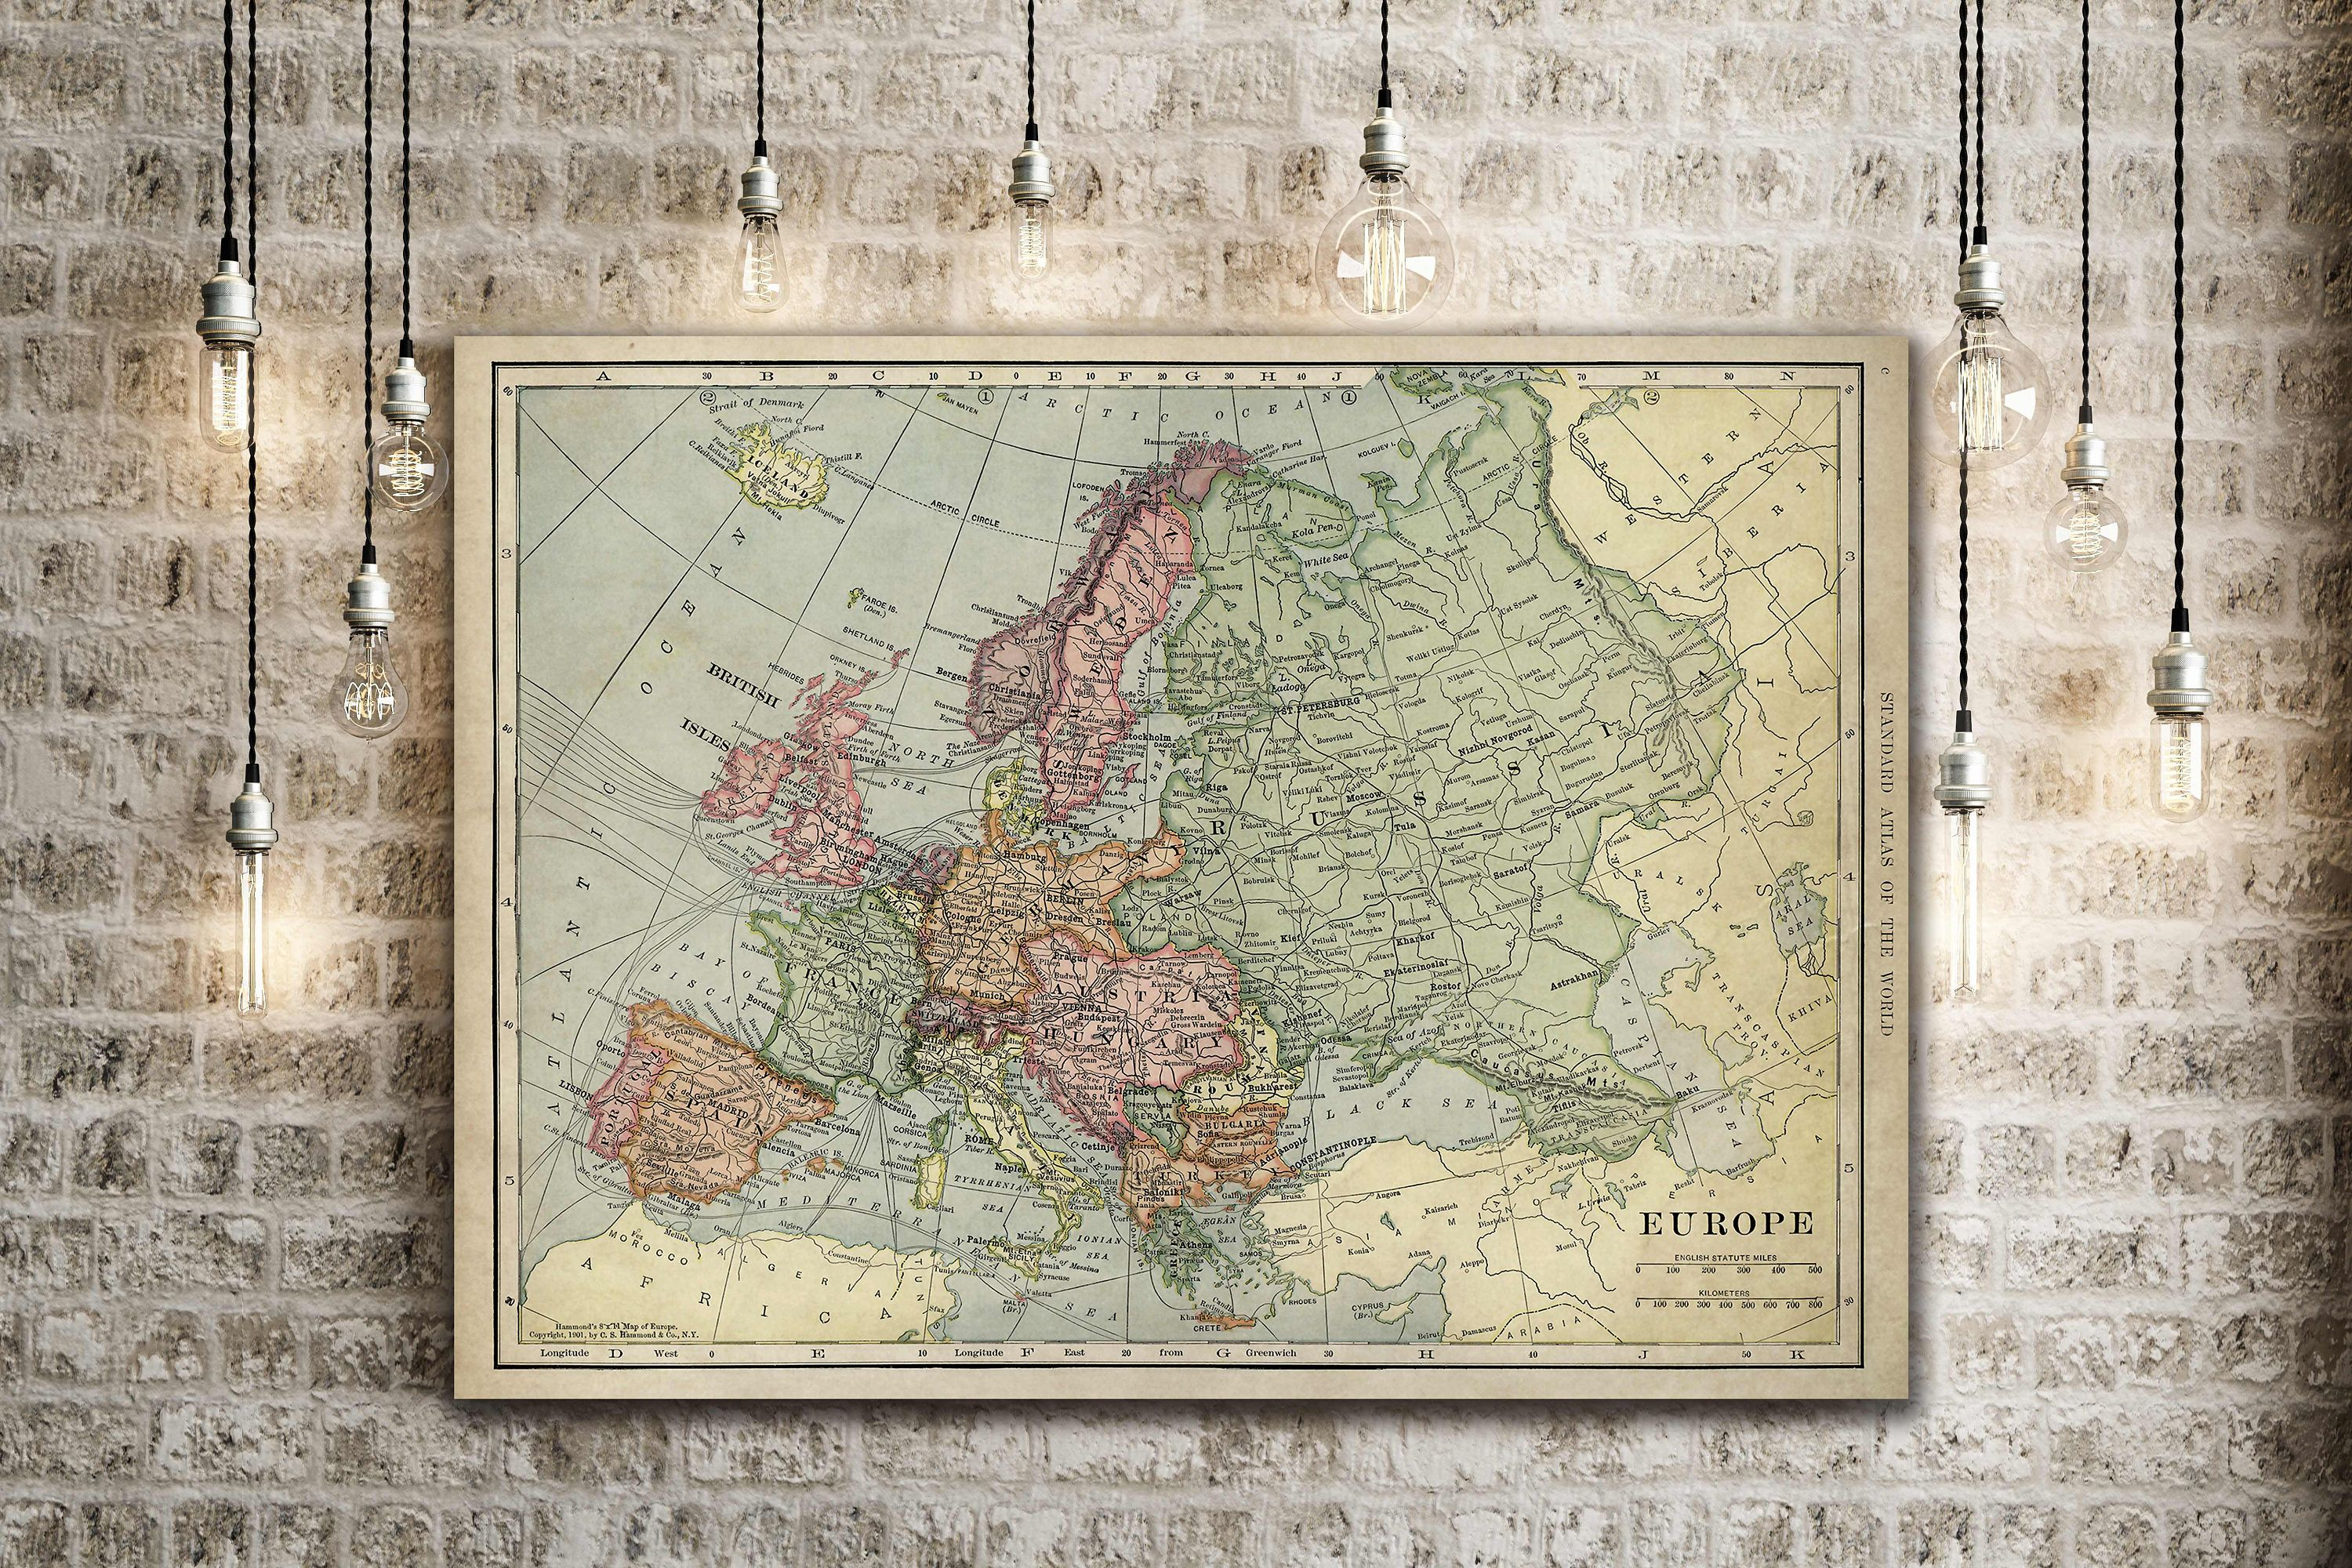 Old Map Of Europe Up To 43x 55 Restoration Hardware Style Decorative Map Vintage Map Of Europe Antique Europe Map Europe Wall Art Old Map Map Decor Vintage Map